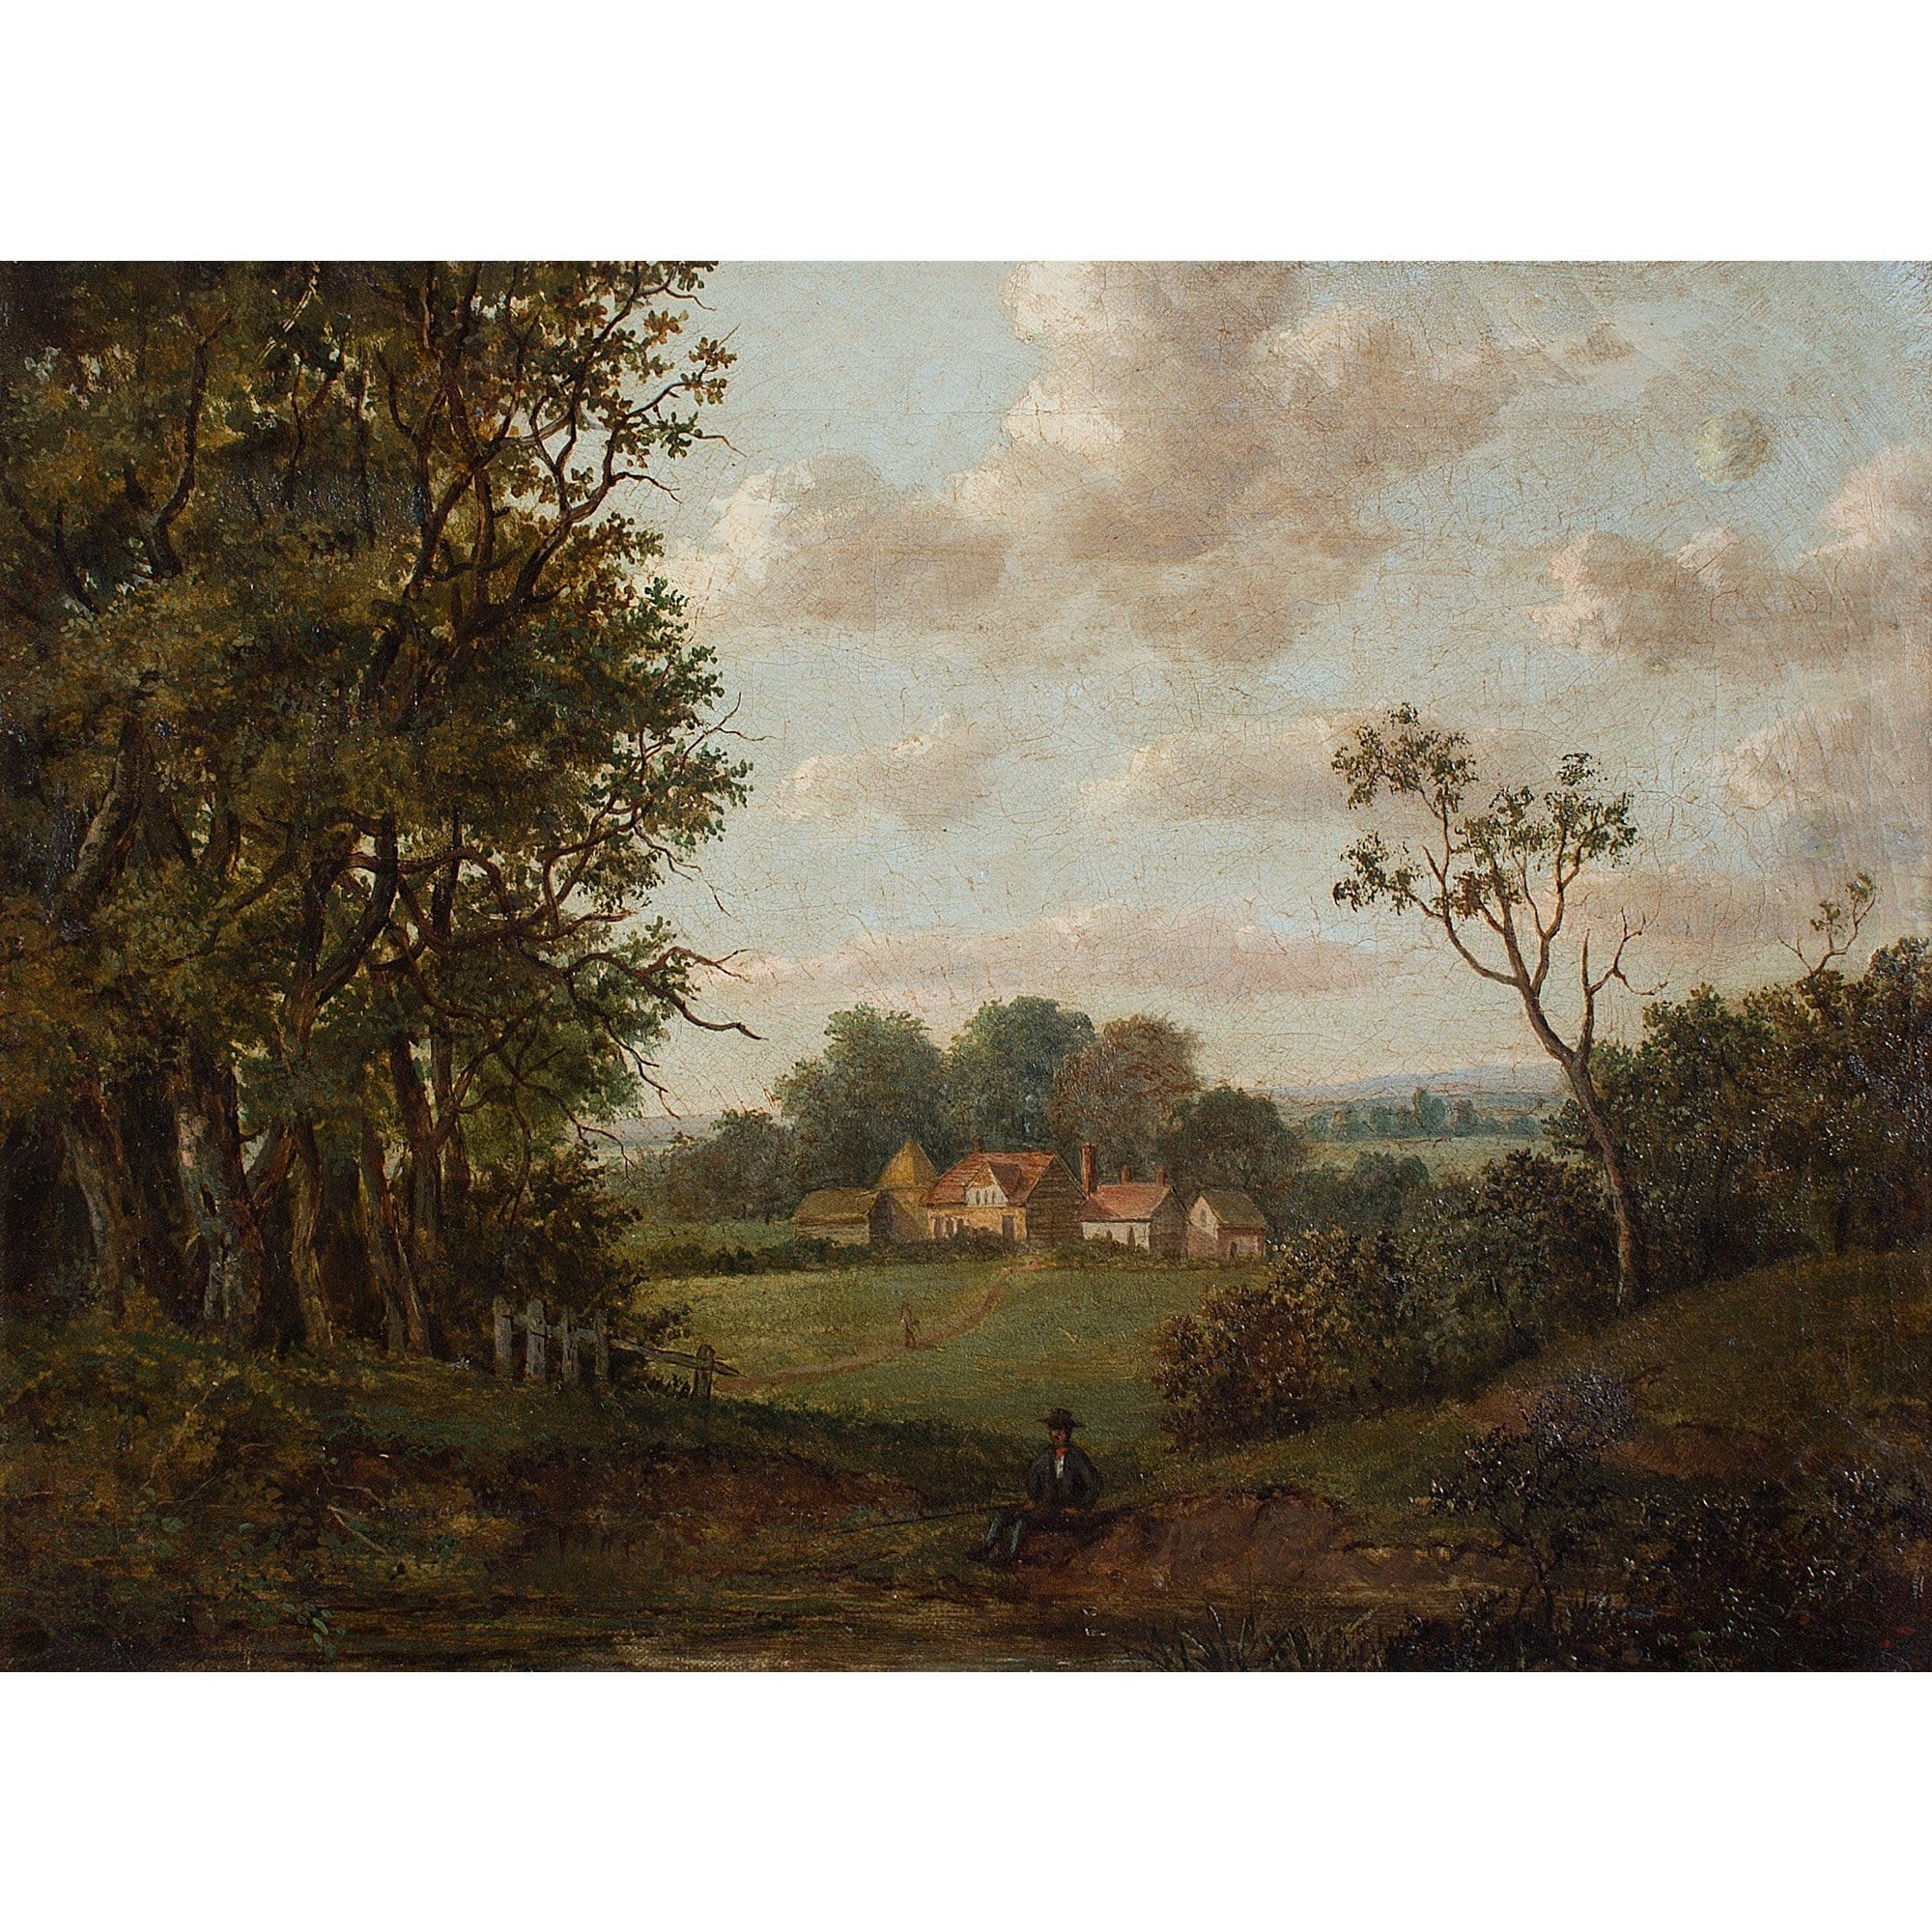 English School Wooded Landscape With Cottages - Original Framed Painting - Antique Art - Brave Fine Art